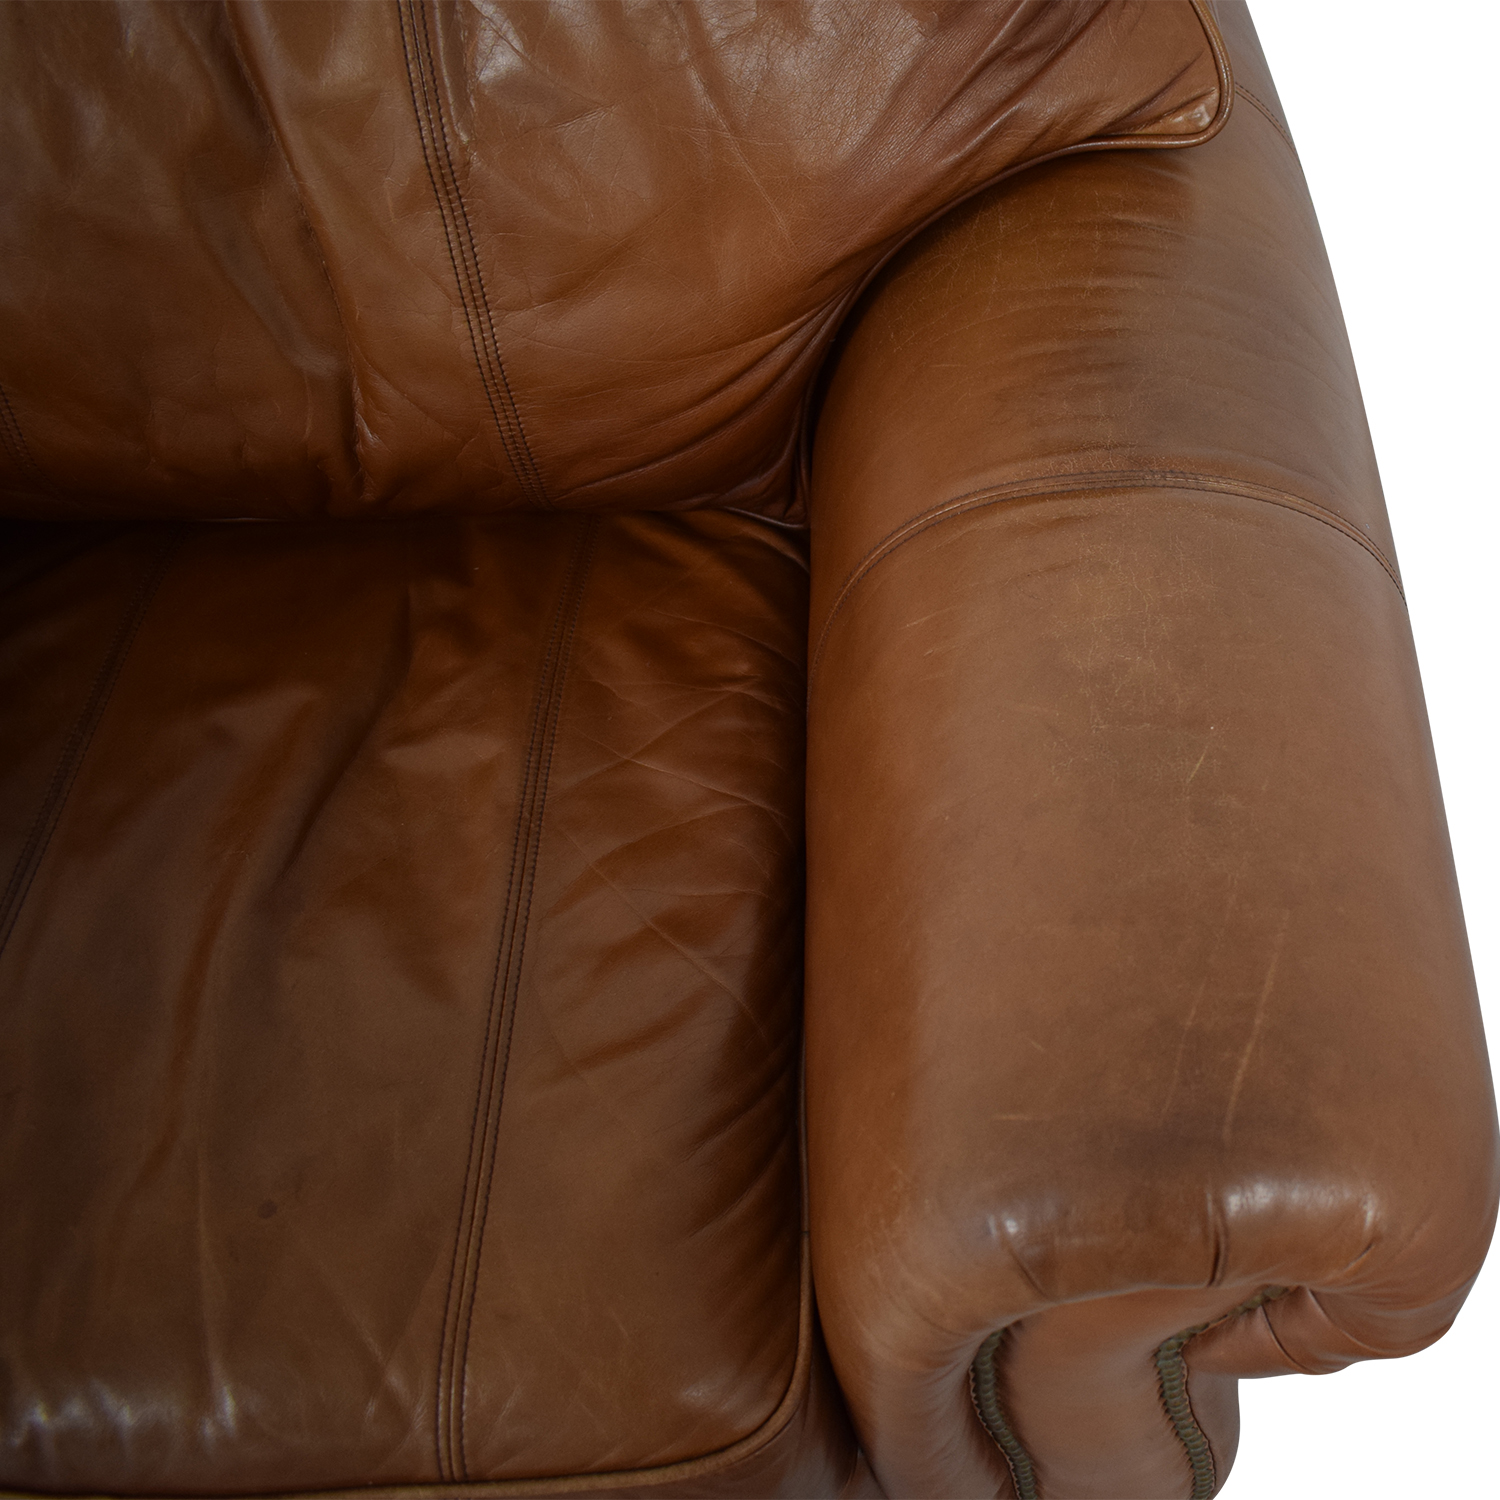 Thomasville Thomasville Leather Sofa Chair on sale